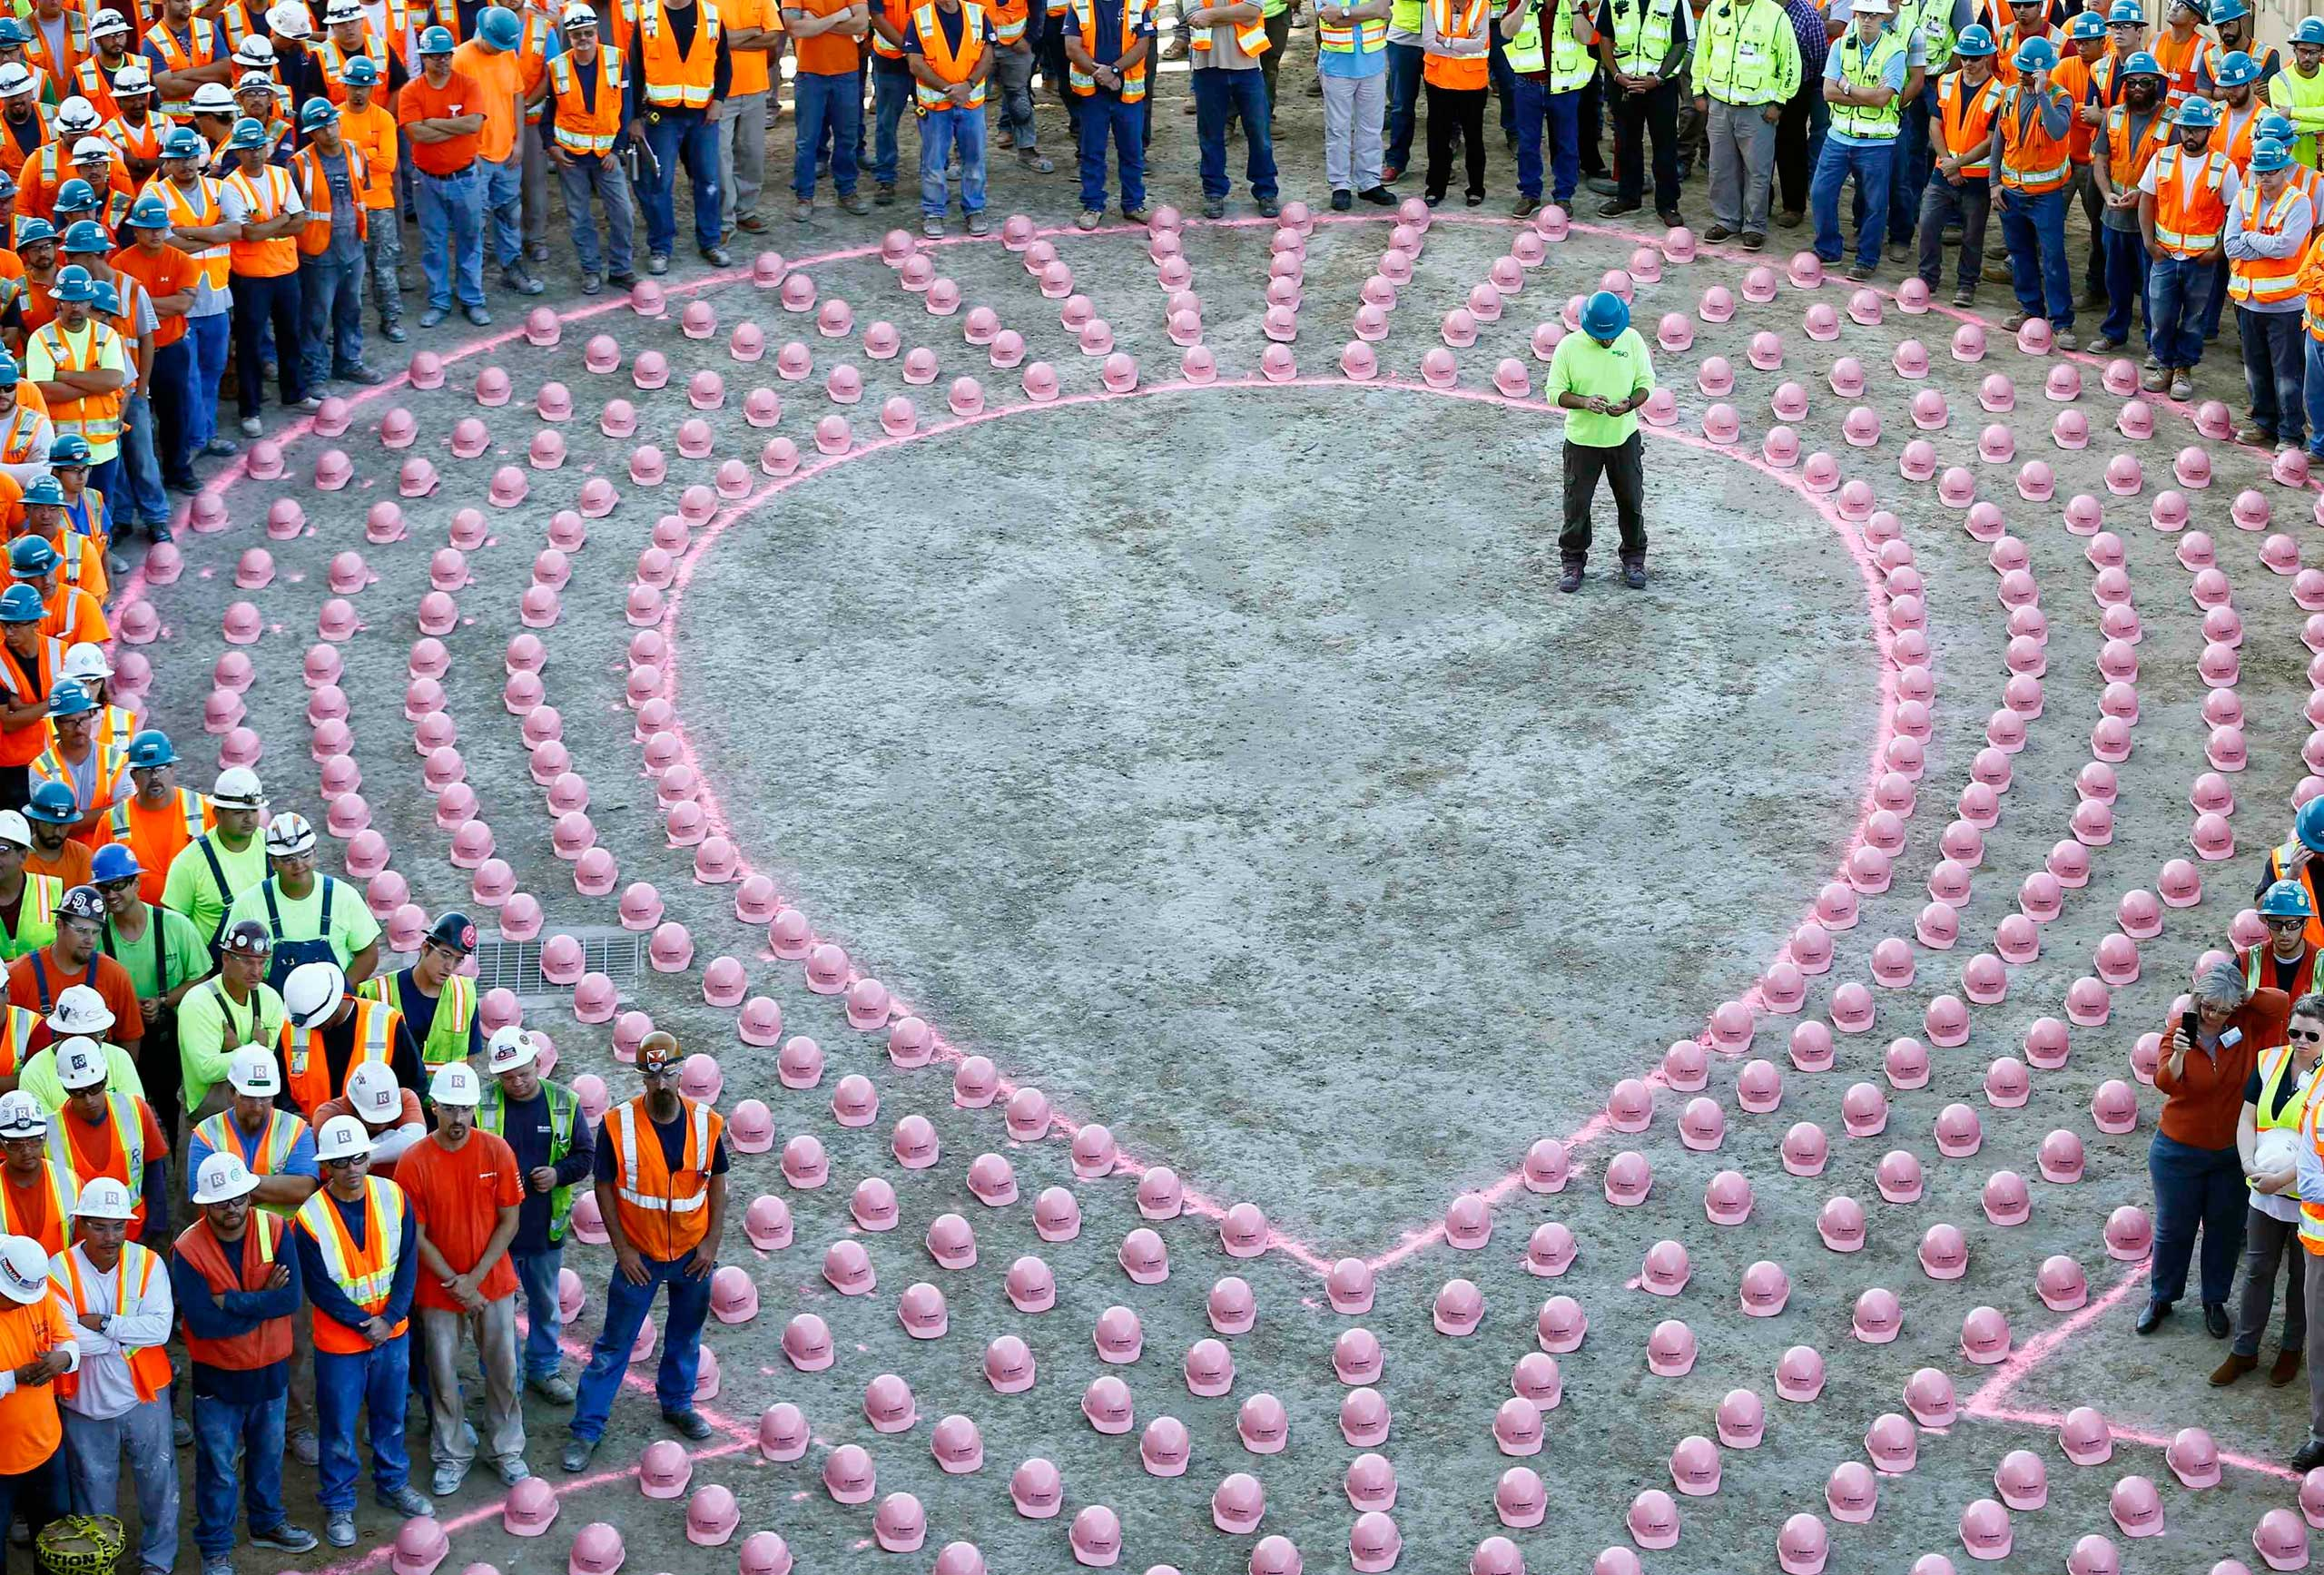 Sept. 30, 2014. Construction workers from EMCOR Dynalectric wait to put on pink hard hats and be part of a giant pink ribbon formation to promote the start of  Breast Cancer Awareness Month, at the UC San Diego Jacobs Medical Center construction site in  La Jolla, California.